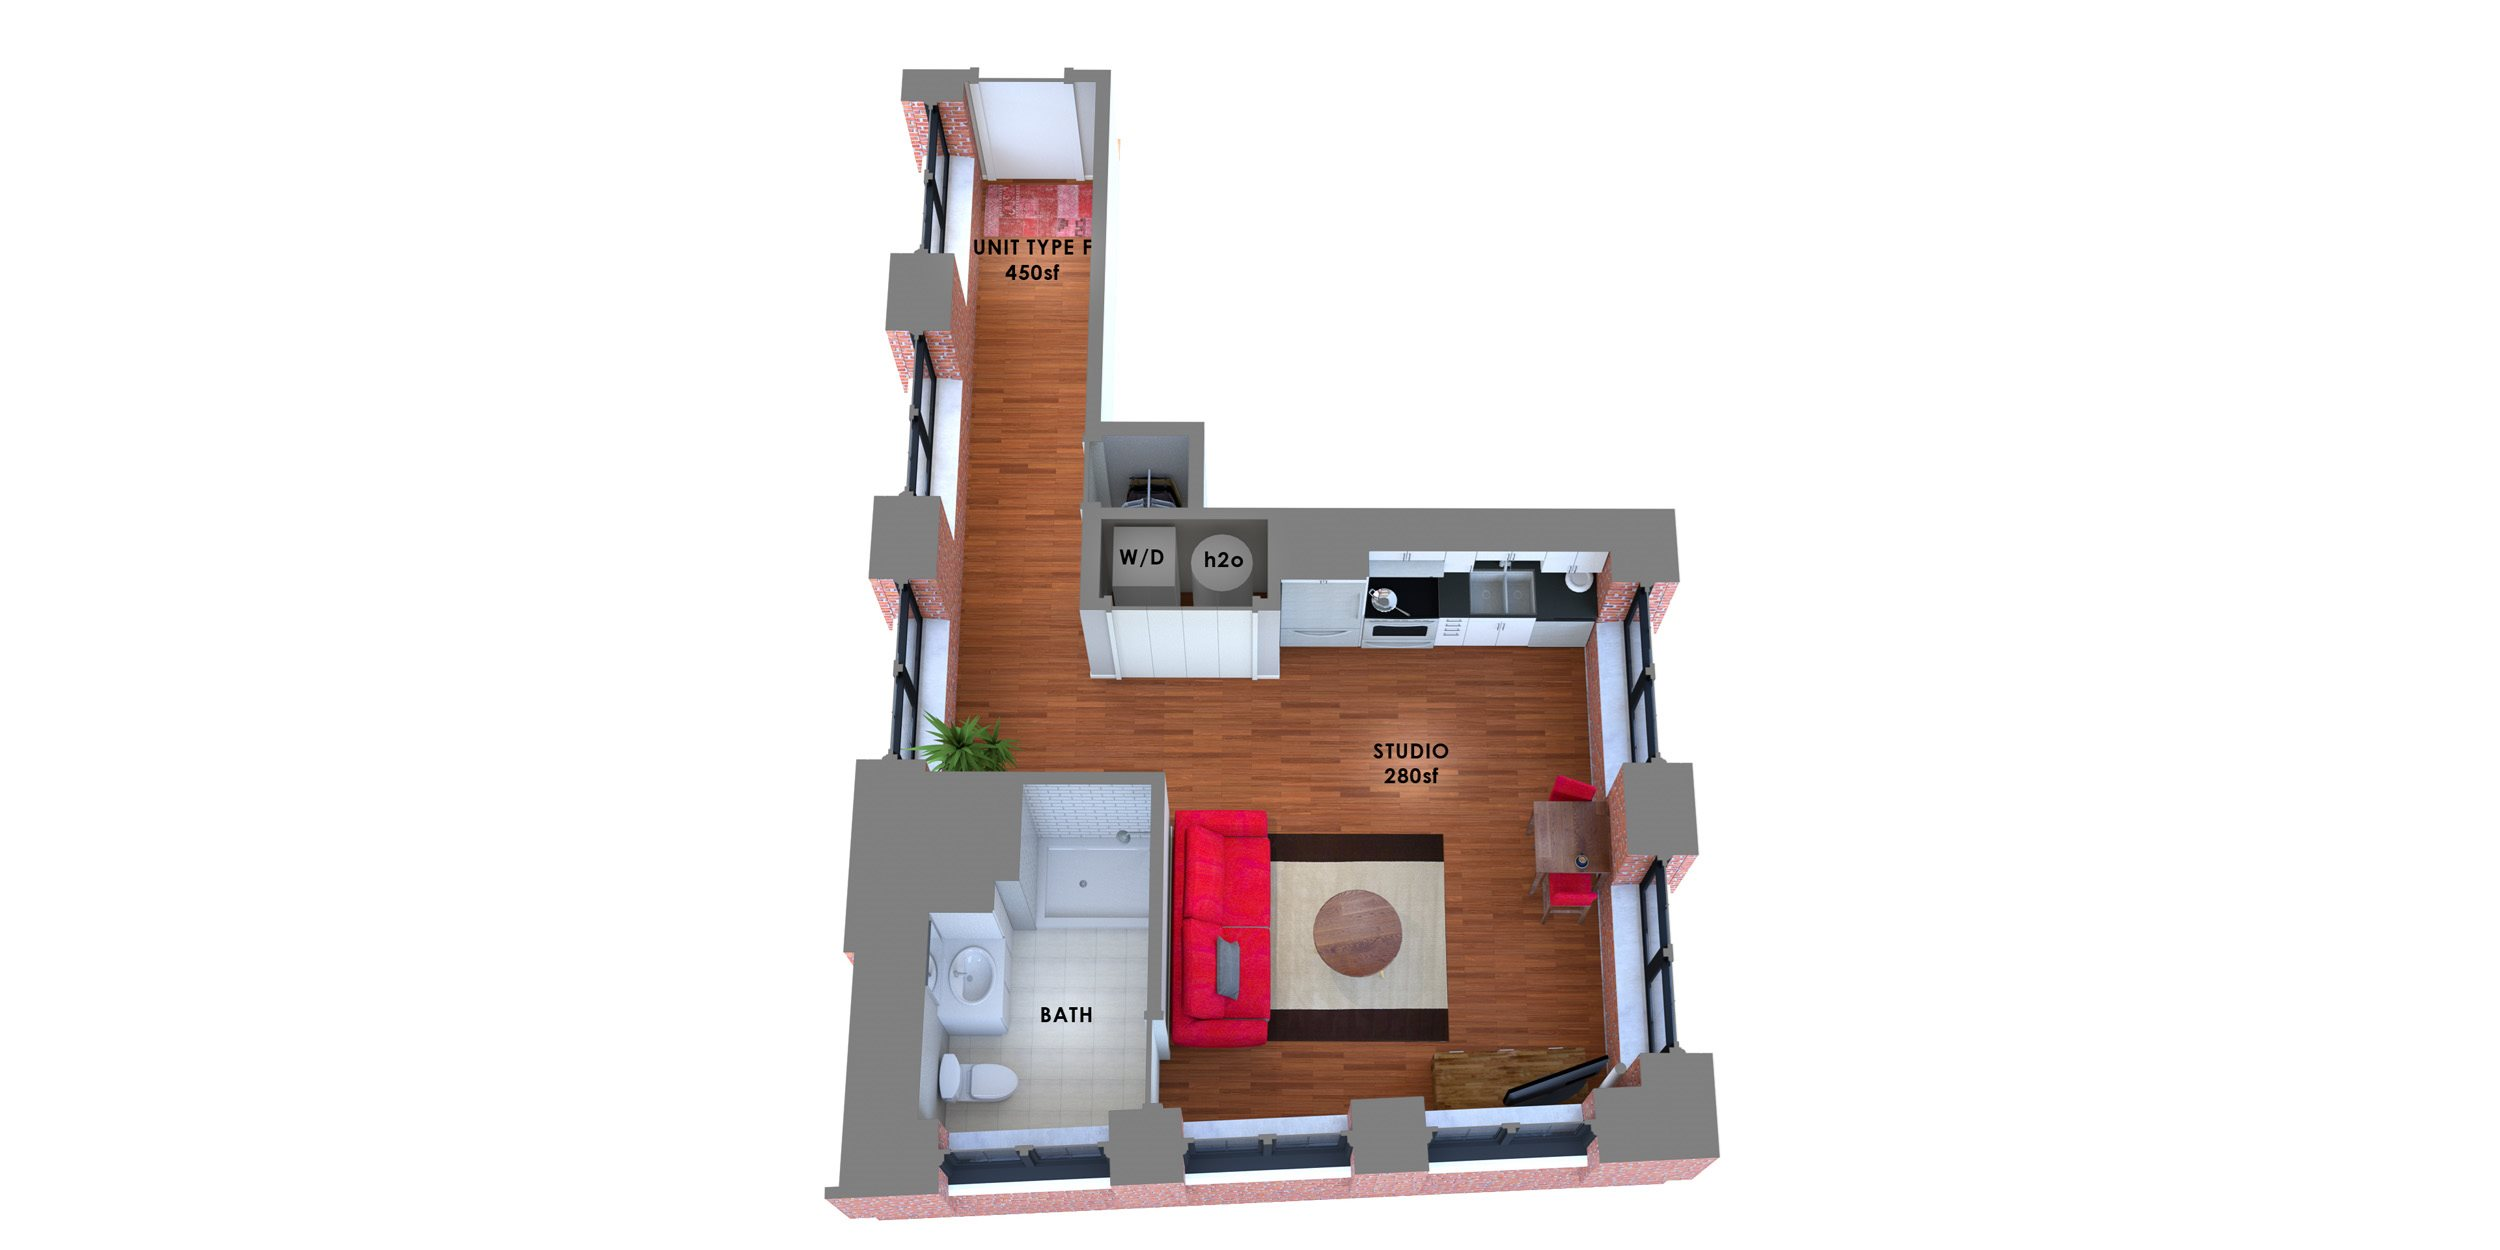 95 Lofts Floor Plan F Floor Plan 11